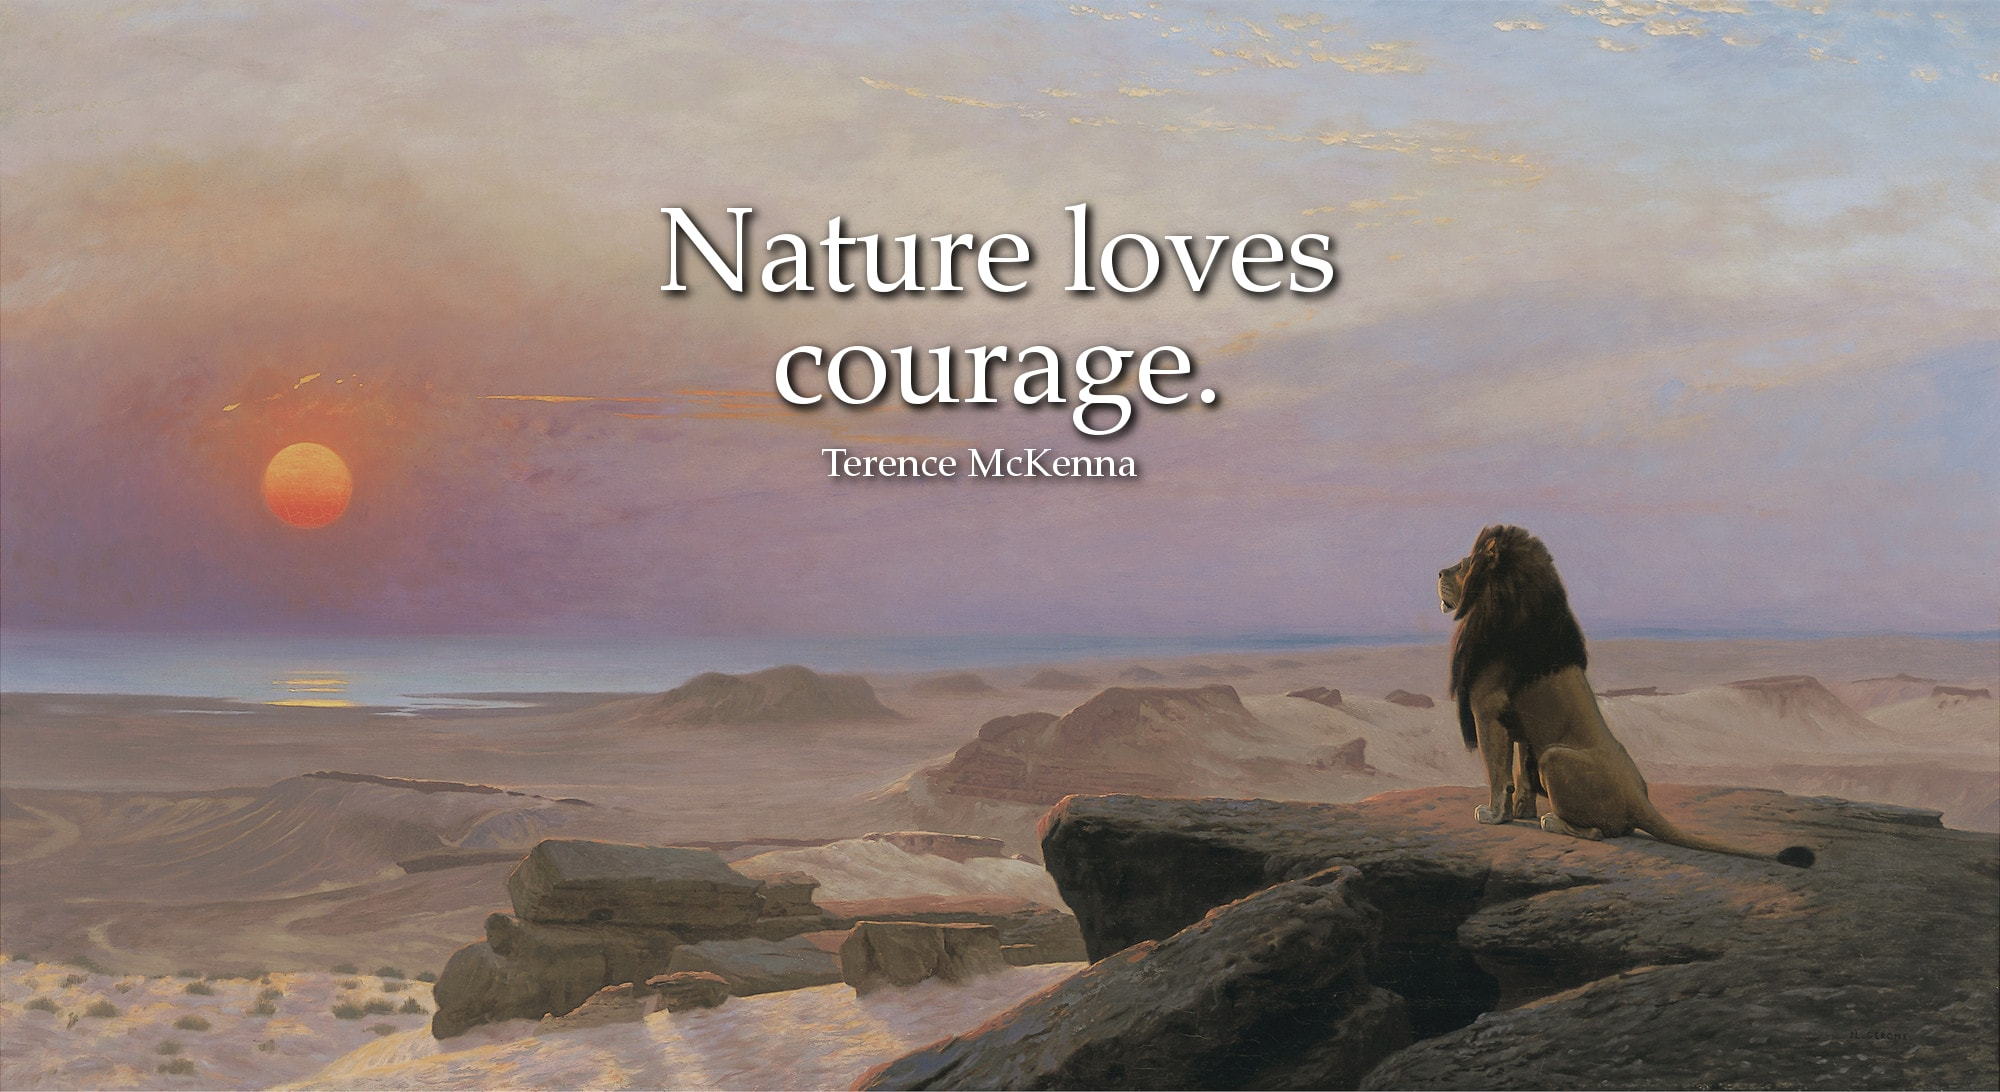 Nature loves courage. Terence McKenna quote